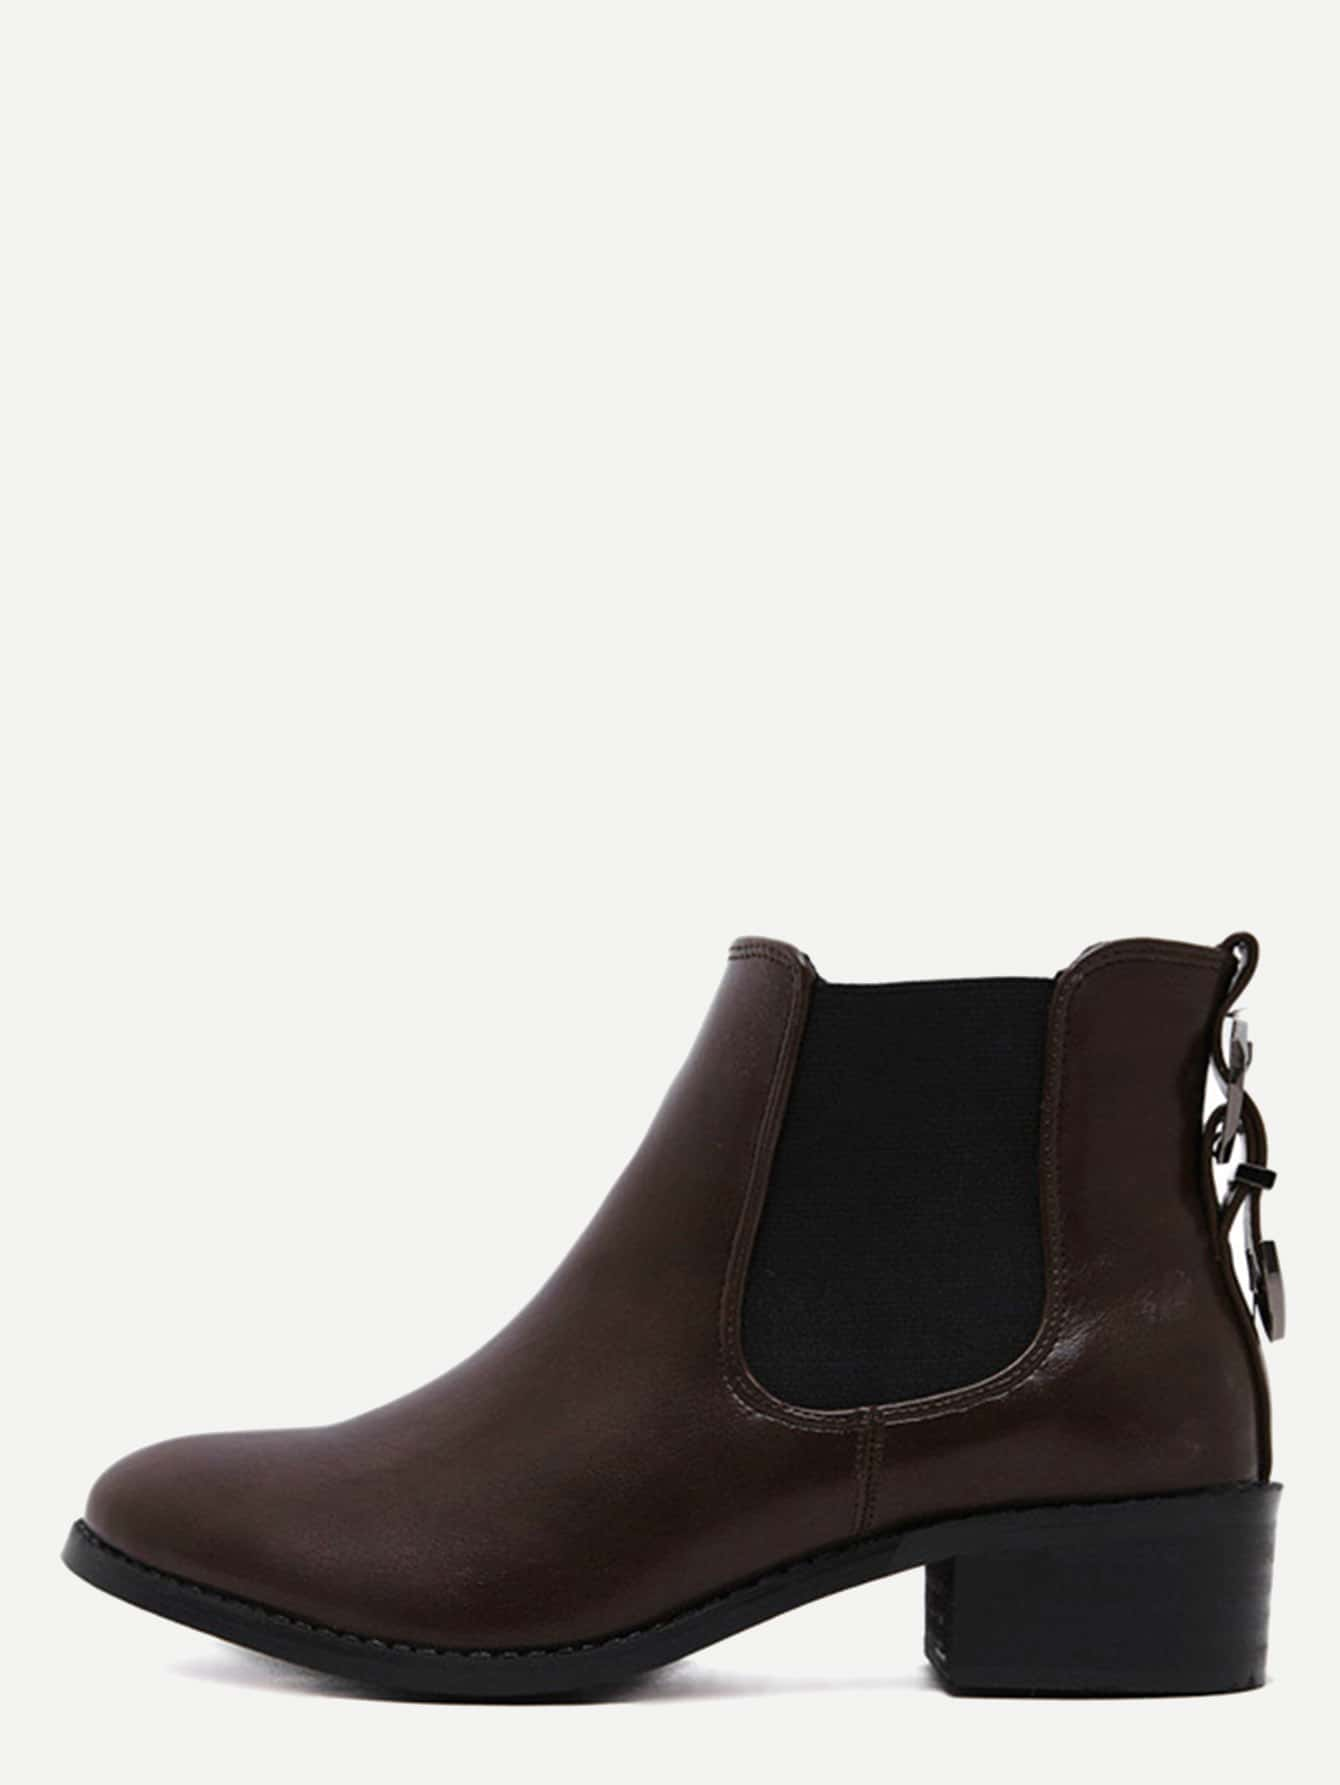 Brown Faux Leather Almond Toe Elastic Buckle Strap Boots shoes161010805